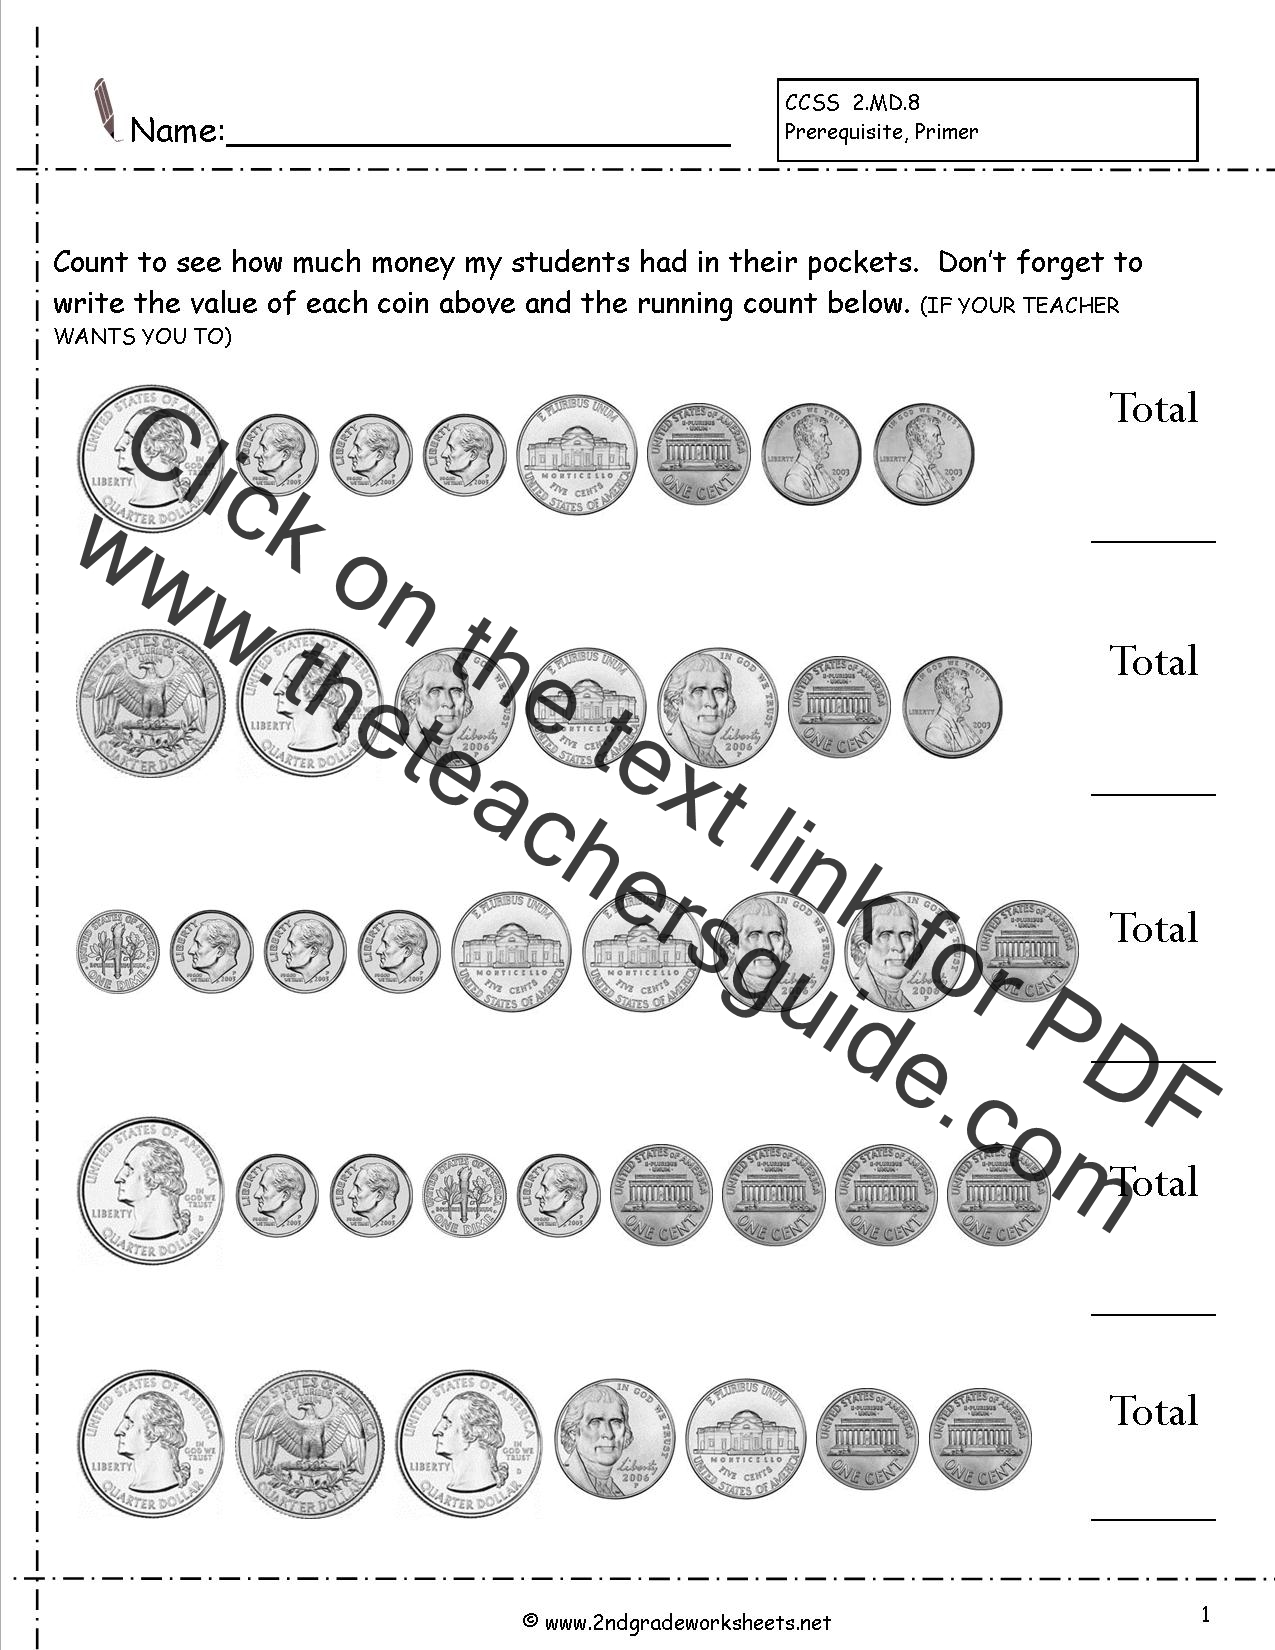 math worksheet : counting coins and money worksheets and printouts : Common Core Math Grade 2 Worksheets